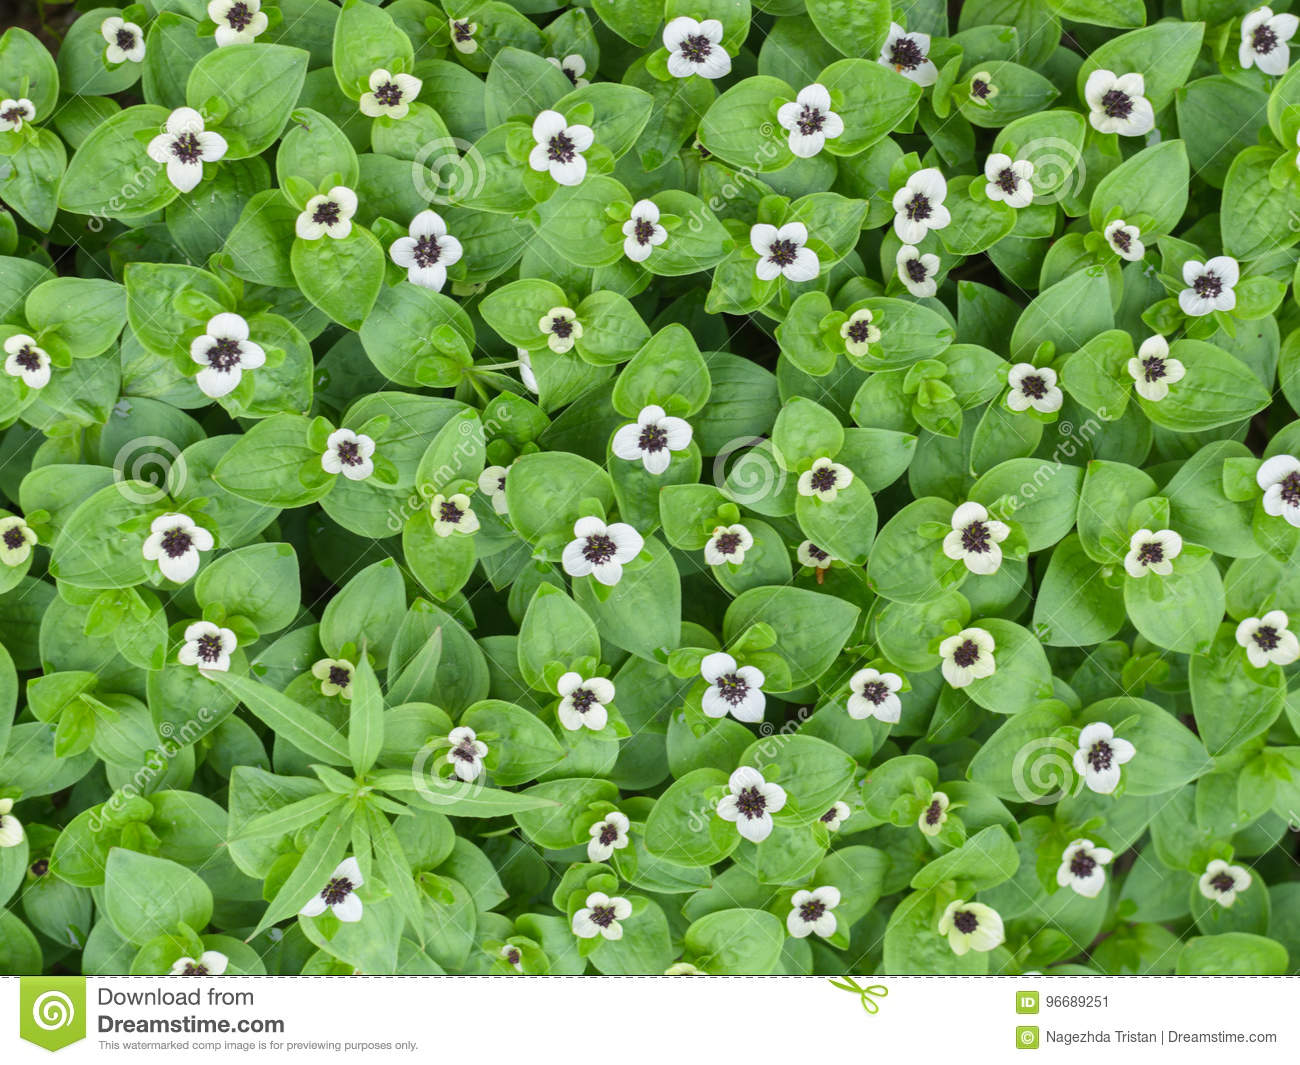 Background Of Green Plants With Small White Flowers Stock Image